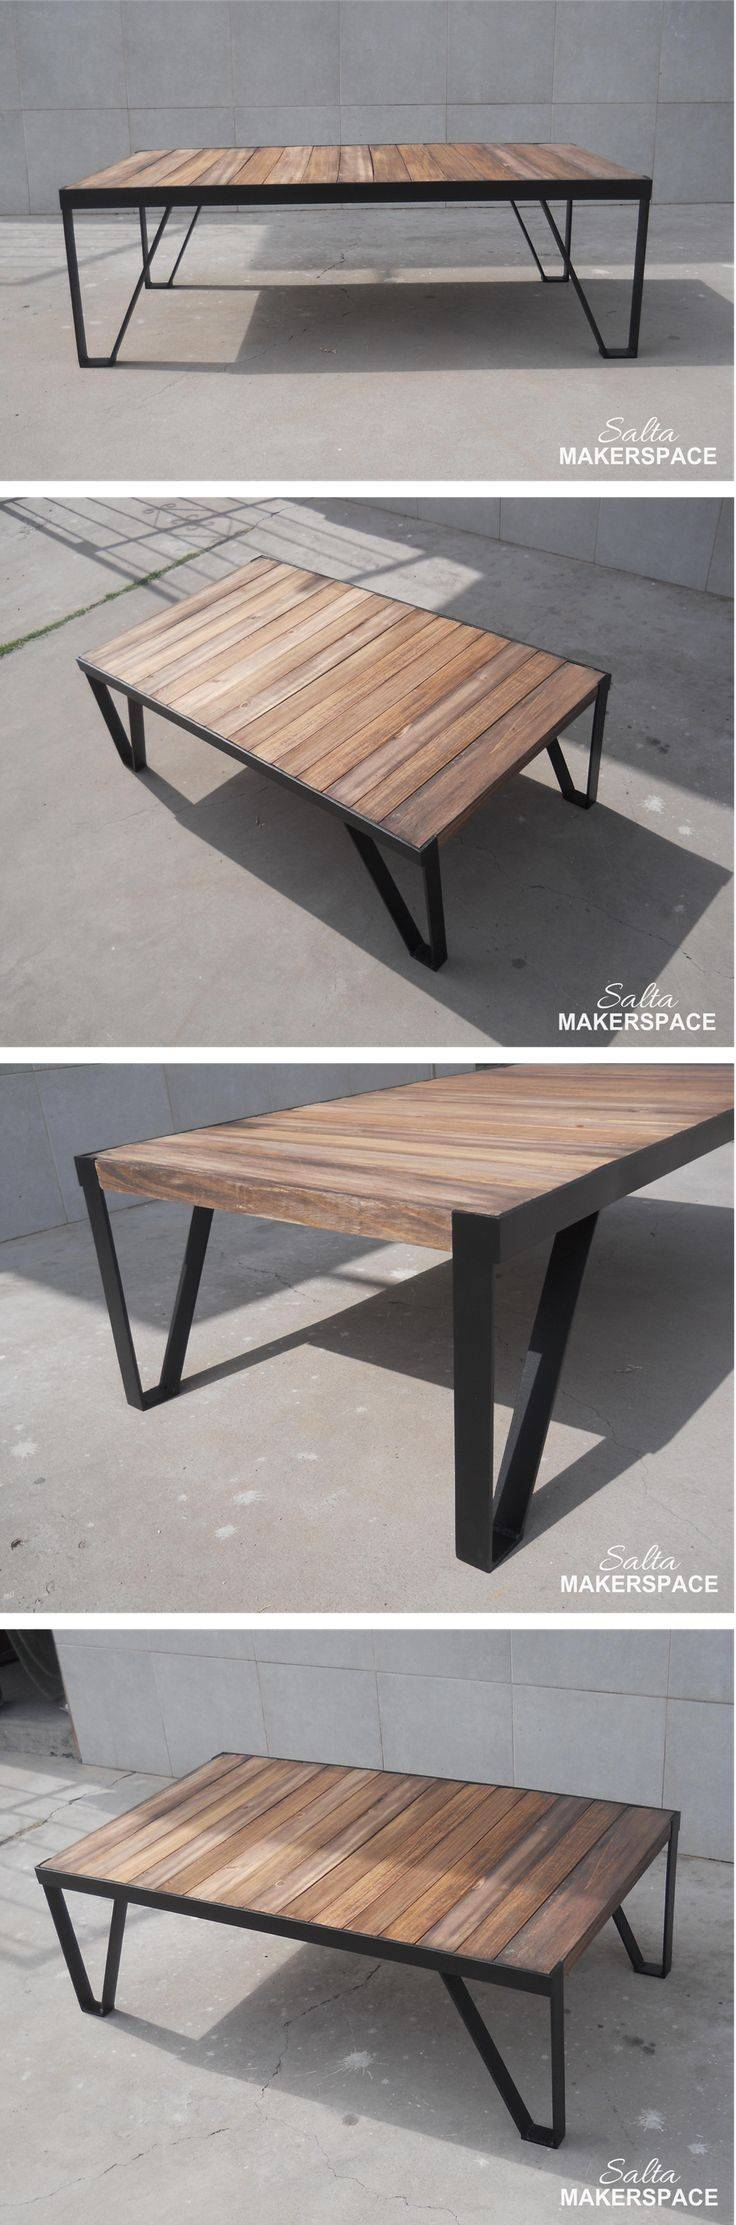 Best 20+ Industrial Coffee Tables Ideas On Pinterest | Coffee throughout Coffee Table Industrial Style (Image 6 of 30)